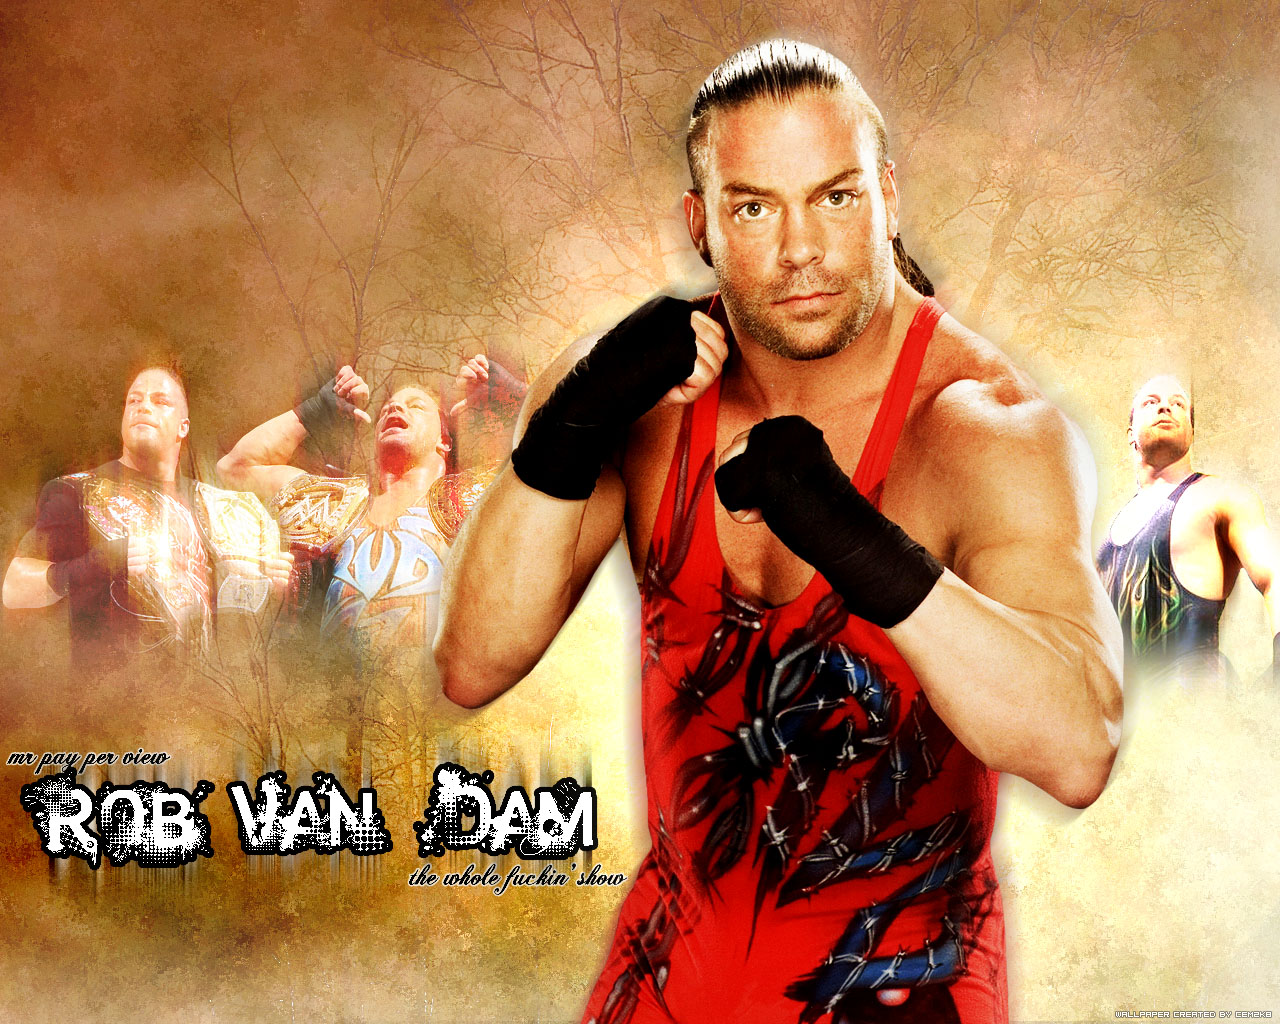 Wwe raw new wallpapers wrestling raw smack down - Wwe rvd images ...